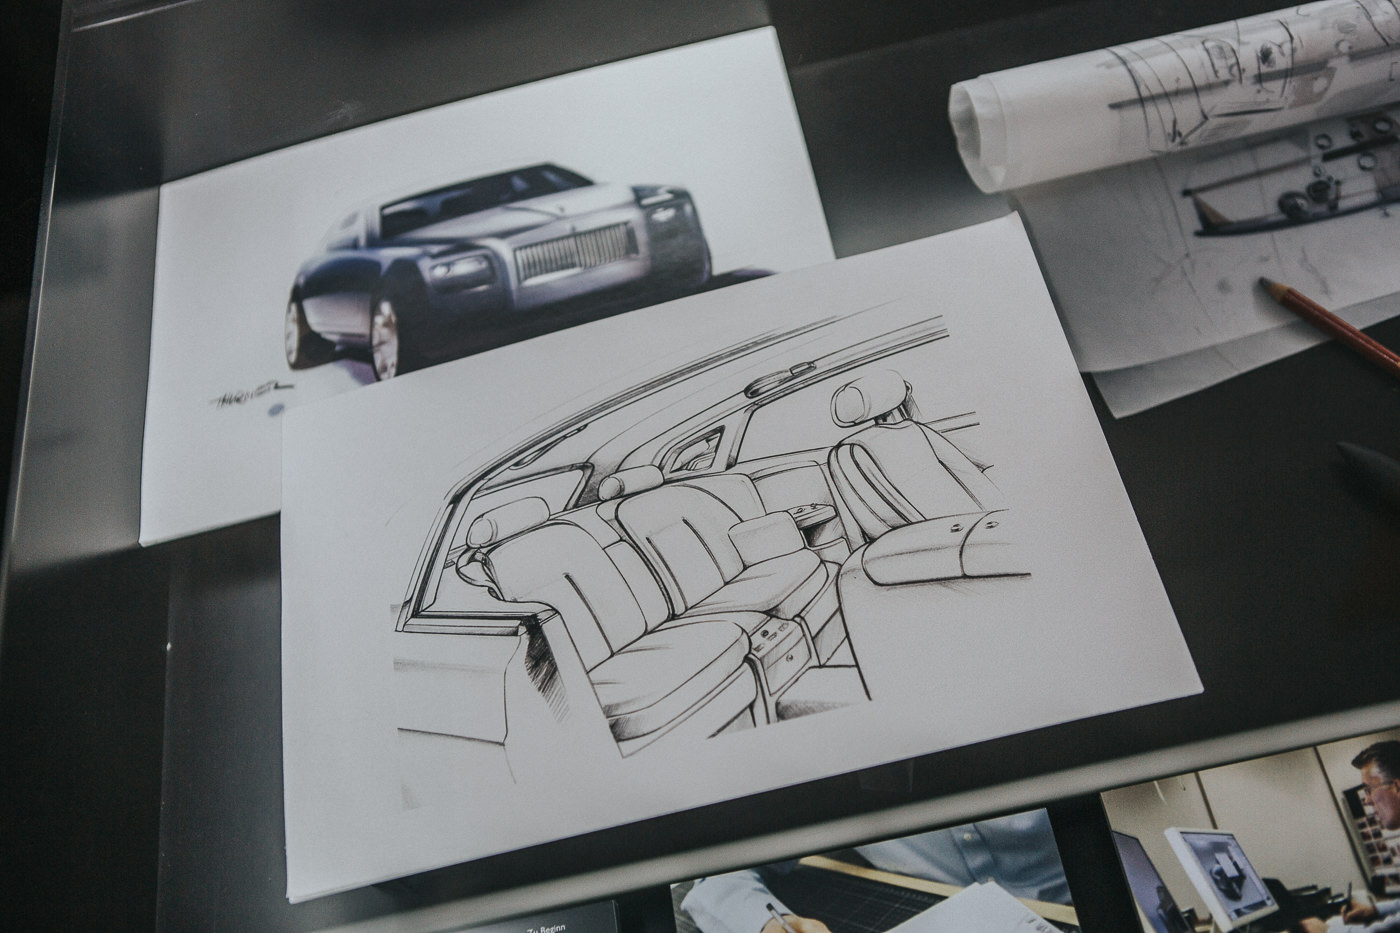 Rolls Royce Phantom Design Schematics